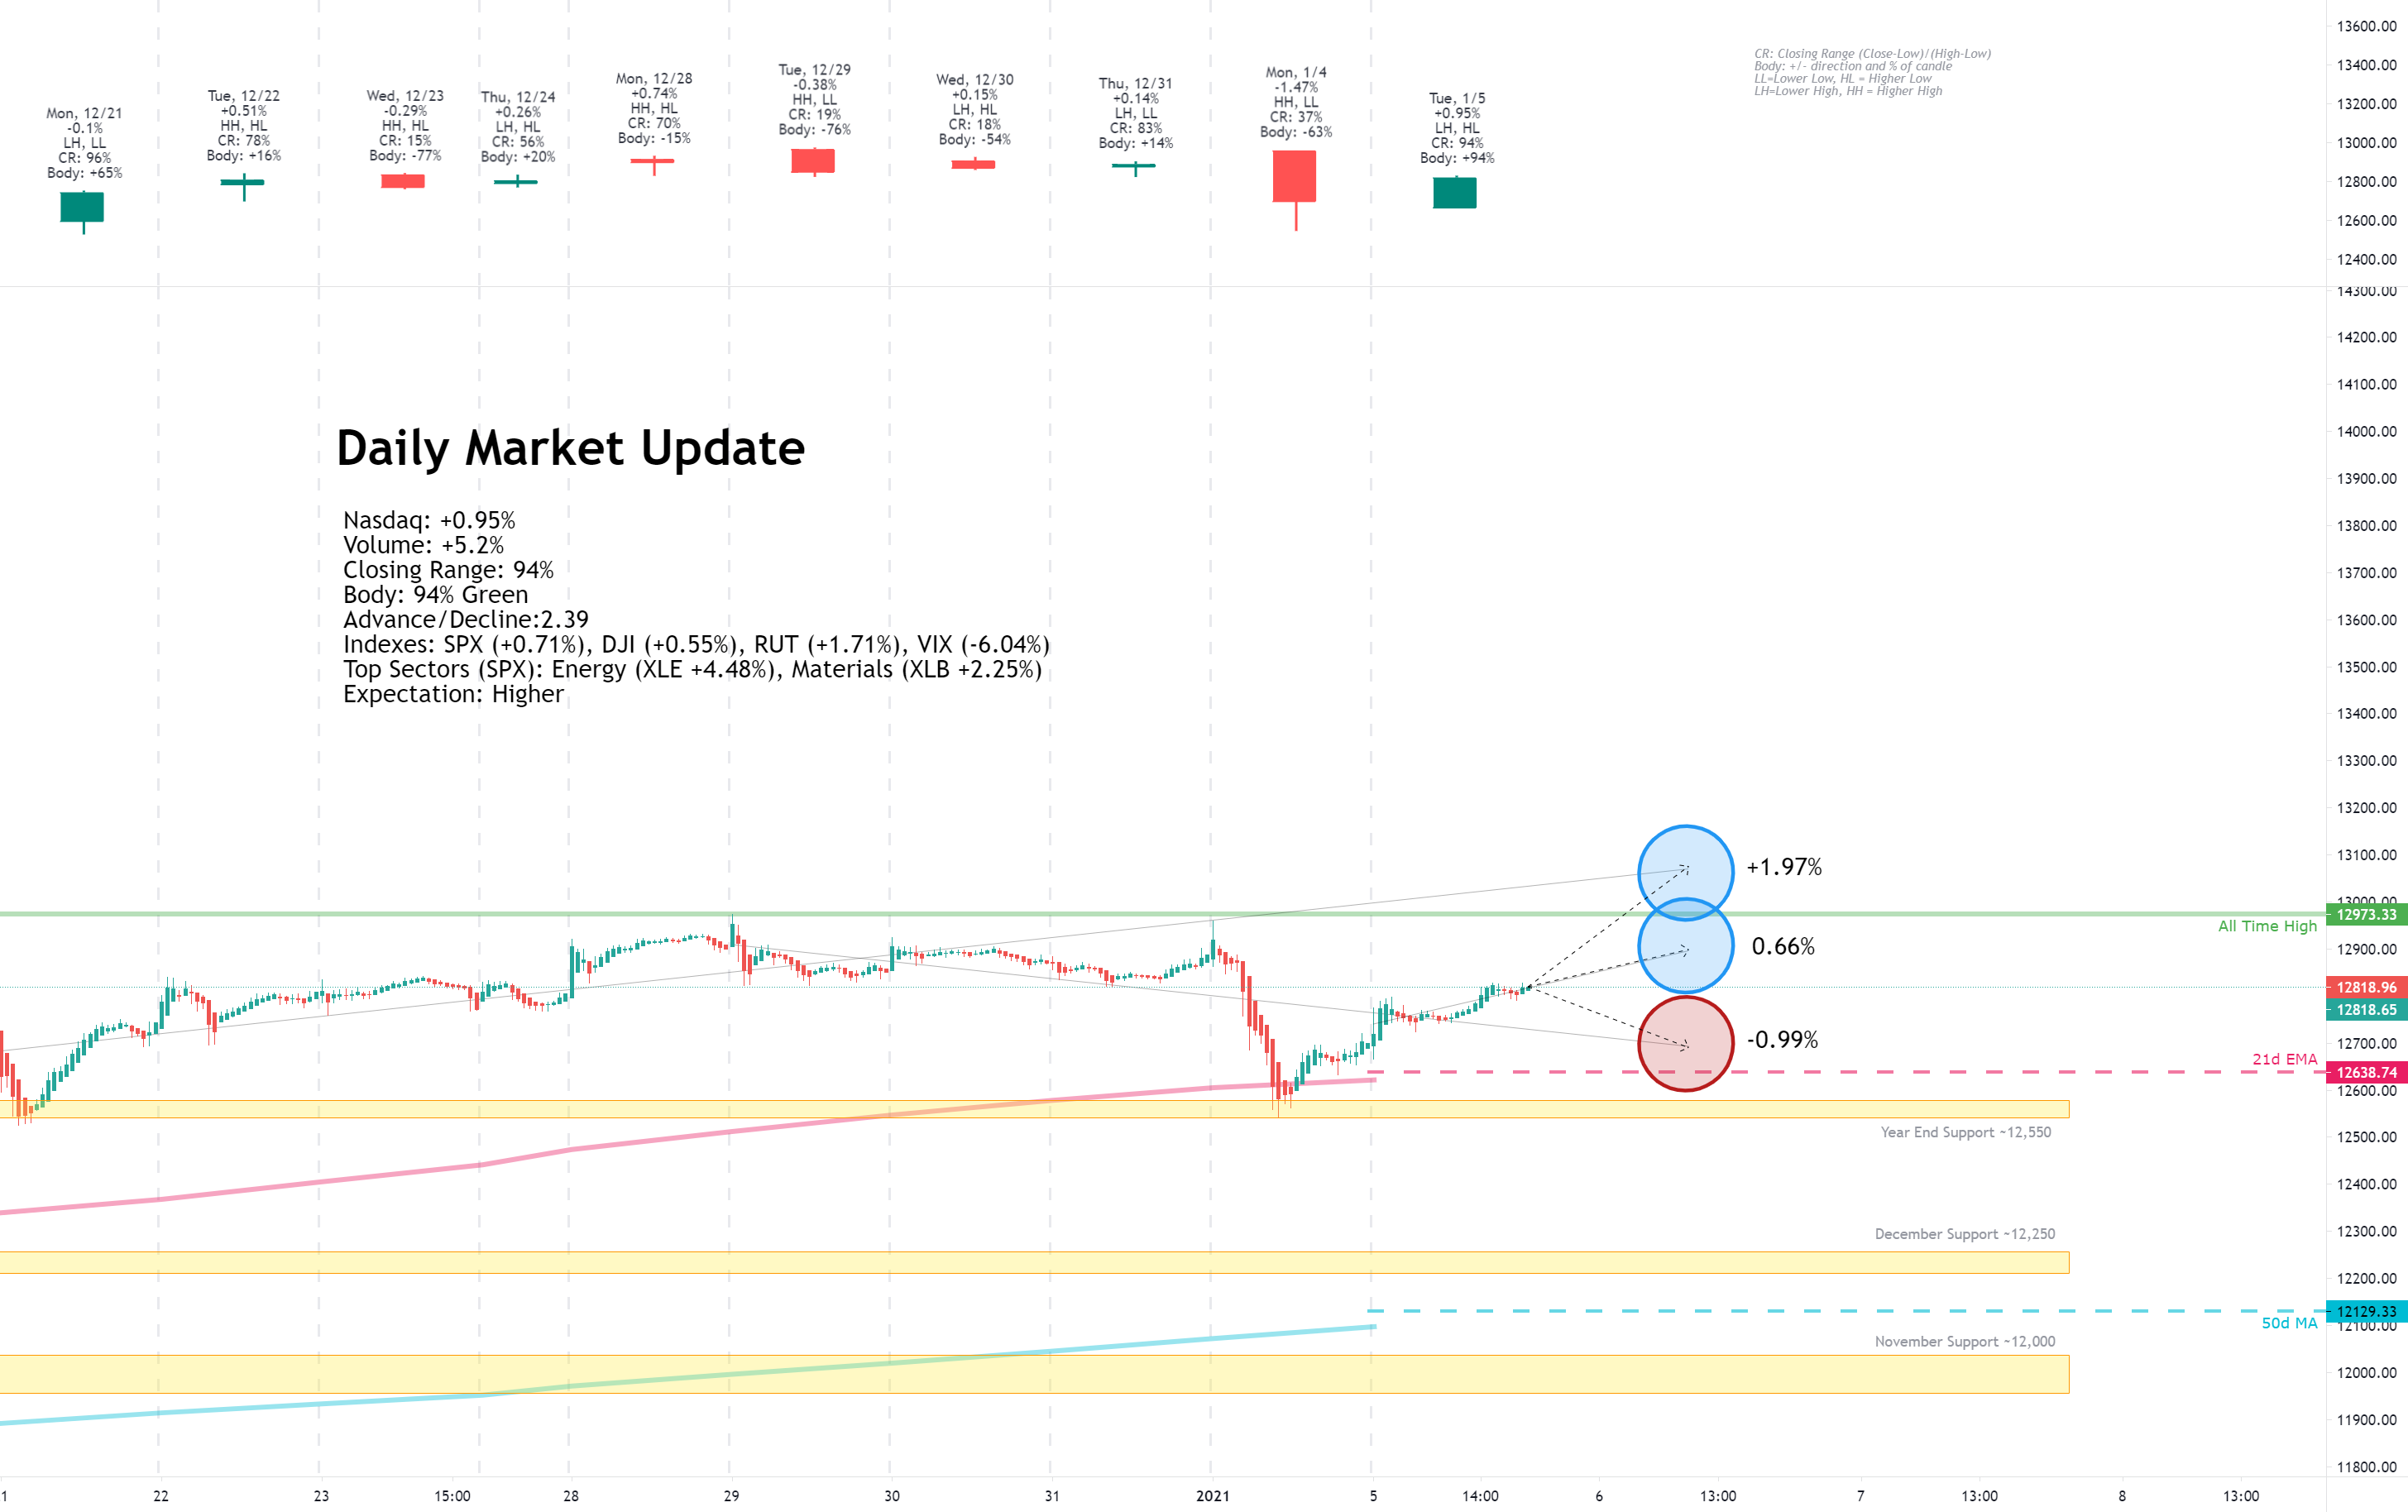 Daily Market Update for 1/5